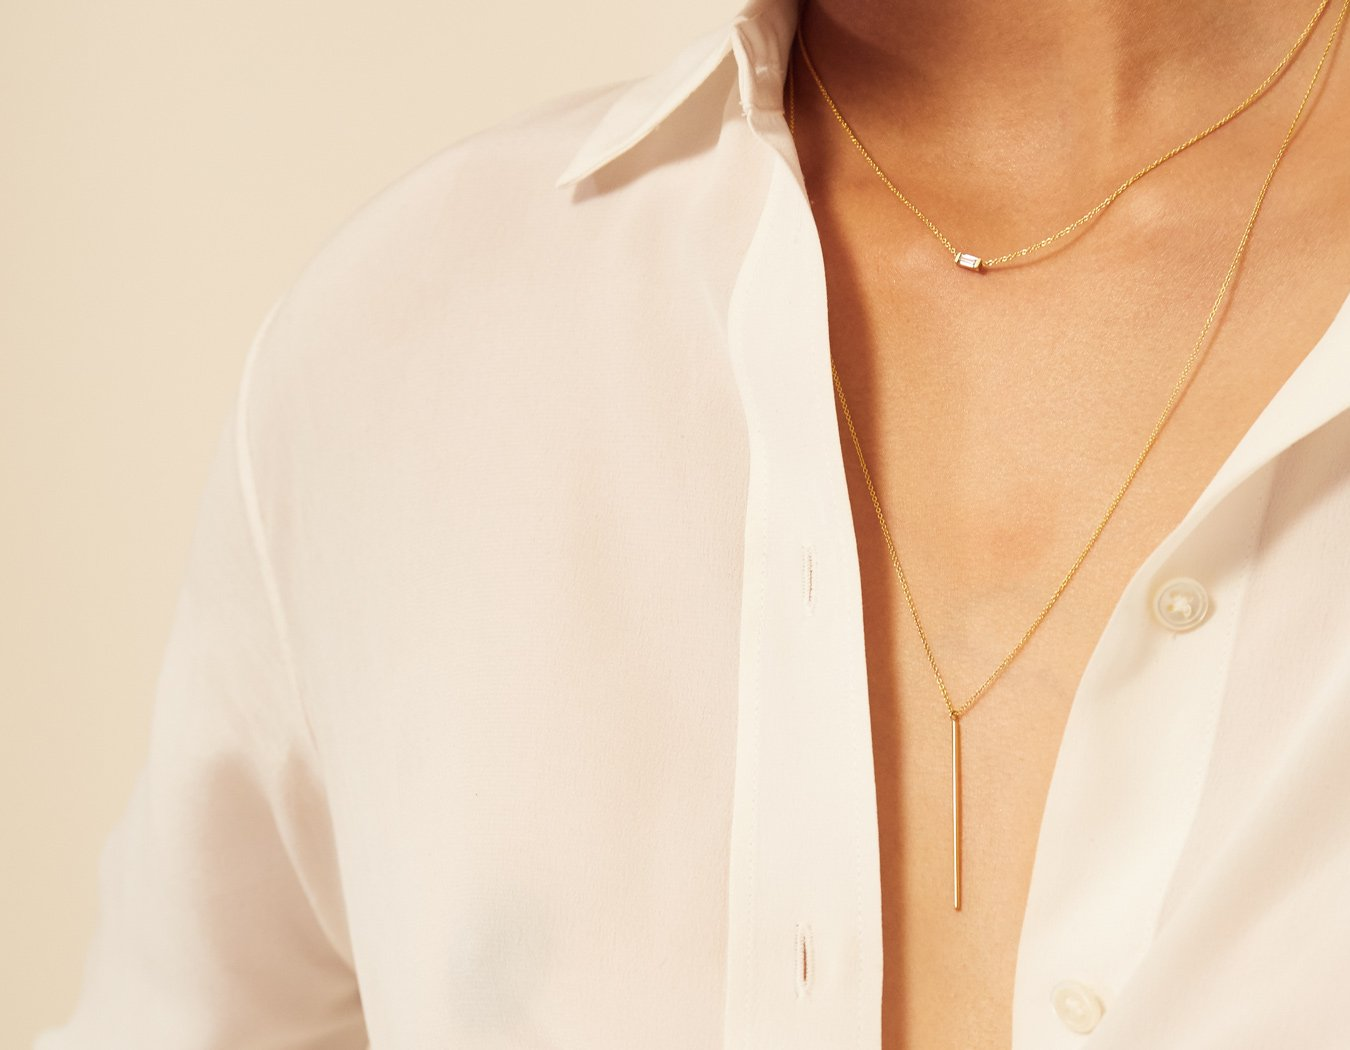 Vrai and oro modern minimalist 14k solid gold long chain Vertical Bar Necklace paired with short chain baguette diamond necklace